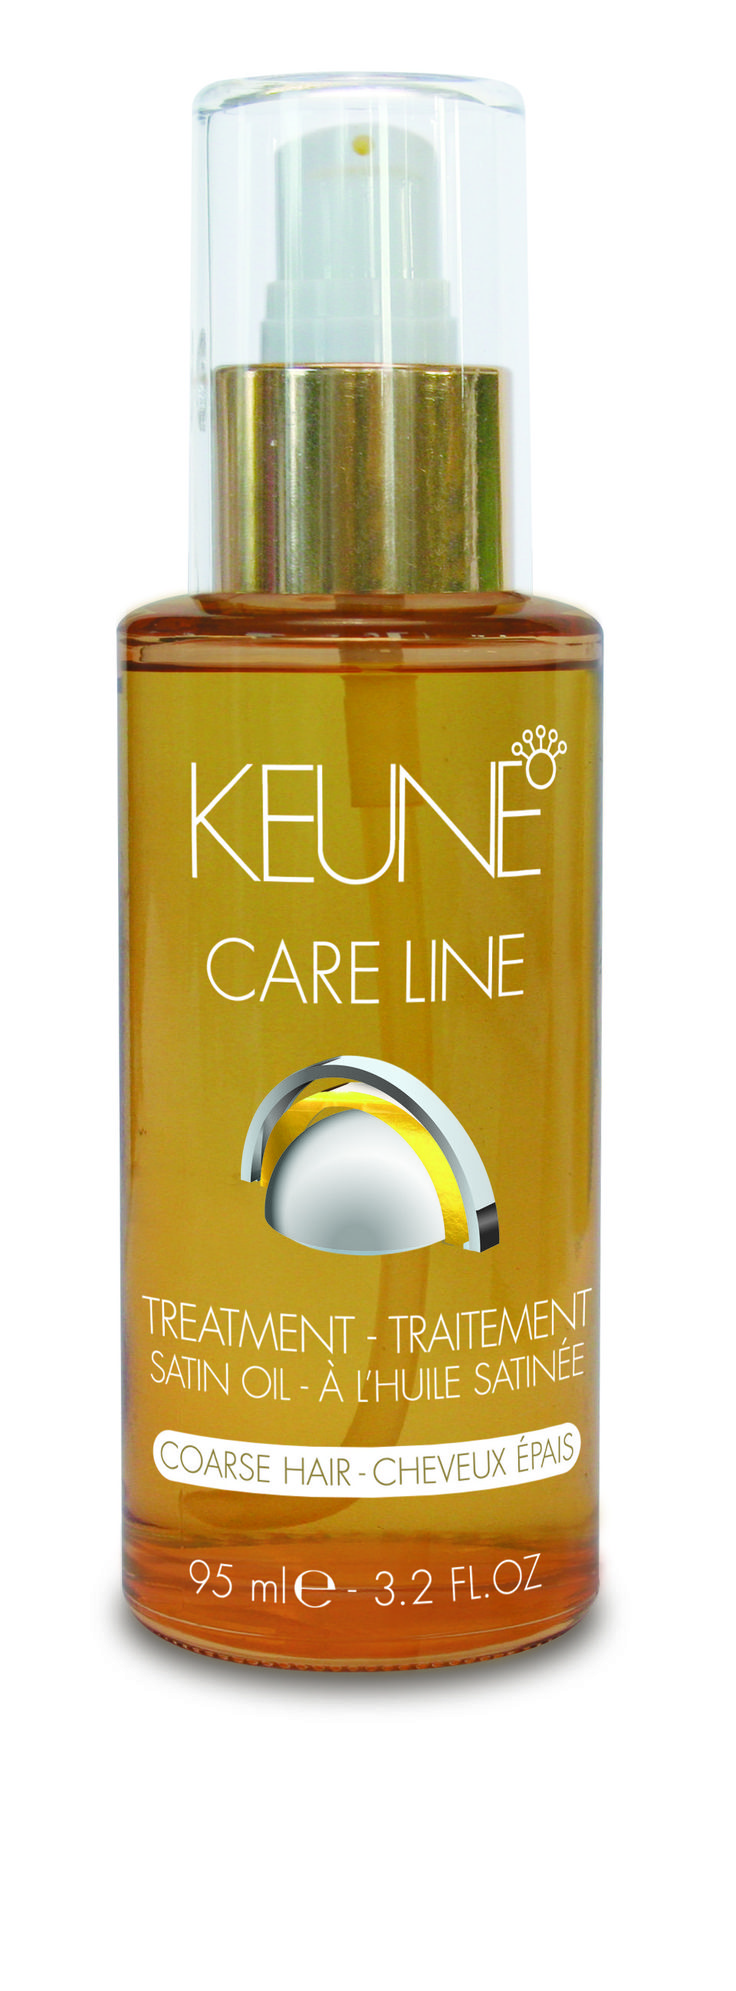 Care Line Satin Oil for coarse hair